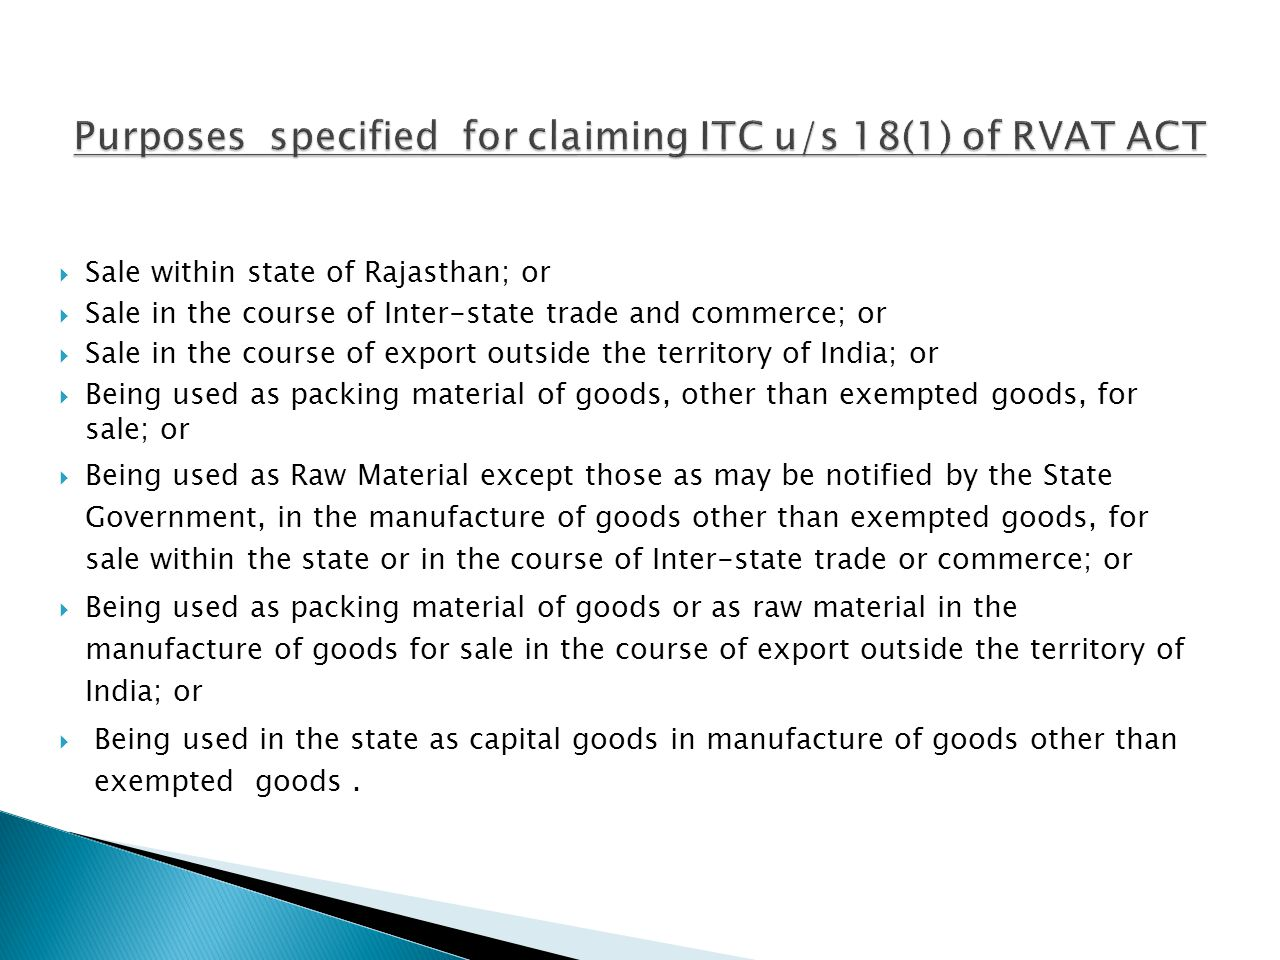 Sale within state of Rajasthan; or Sale in the course of Inter-state trade and commerce; or Sale in the course of export outside the territory of Indi